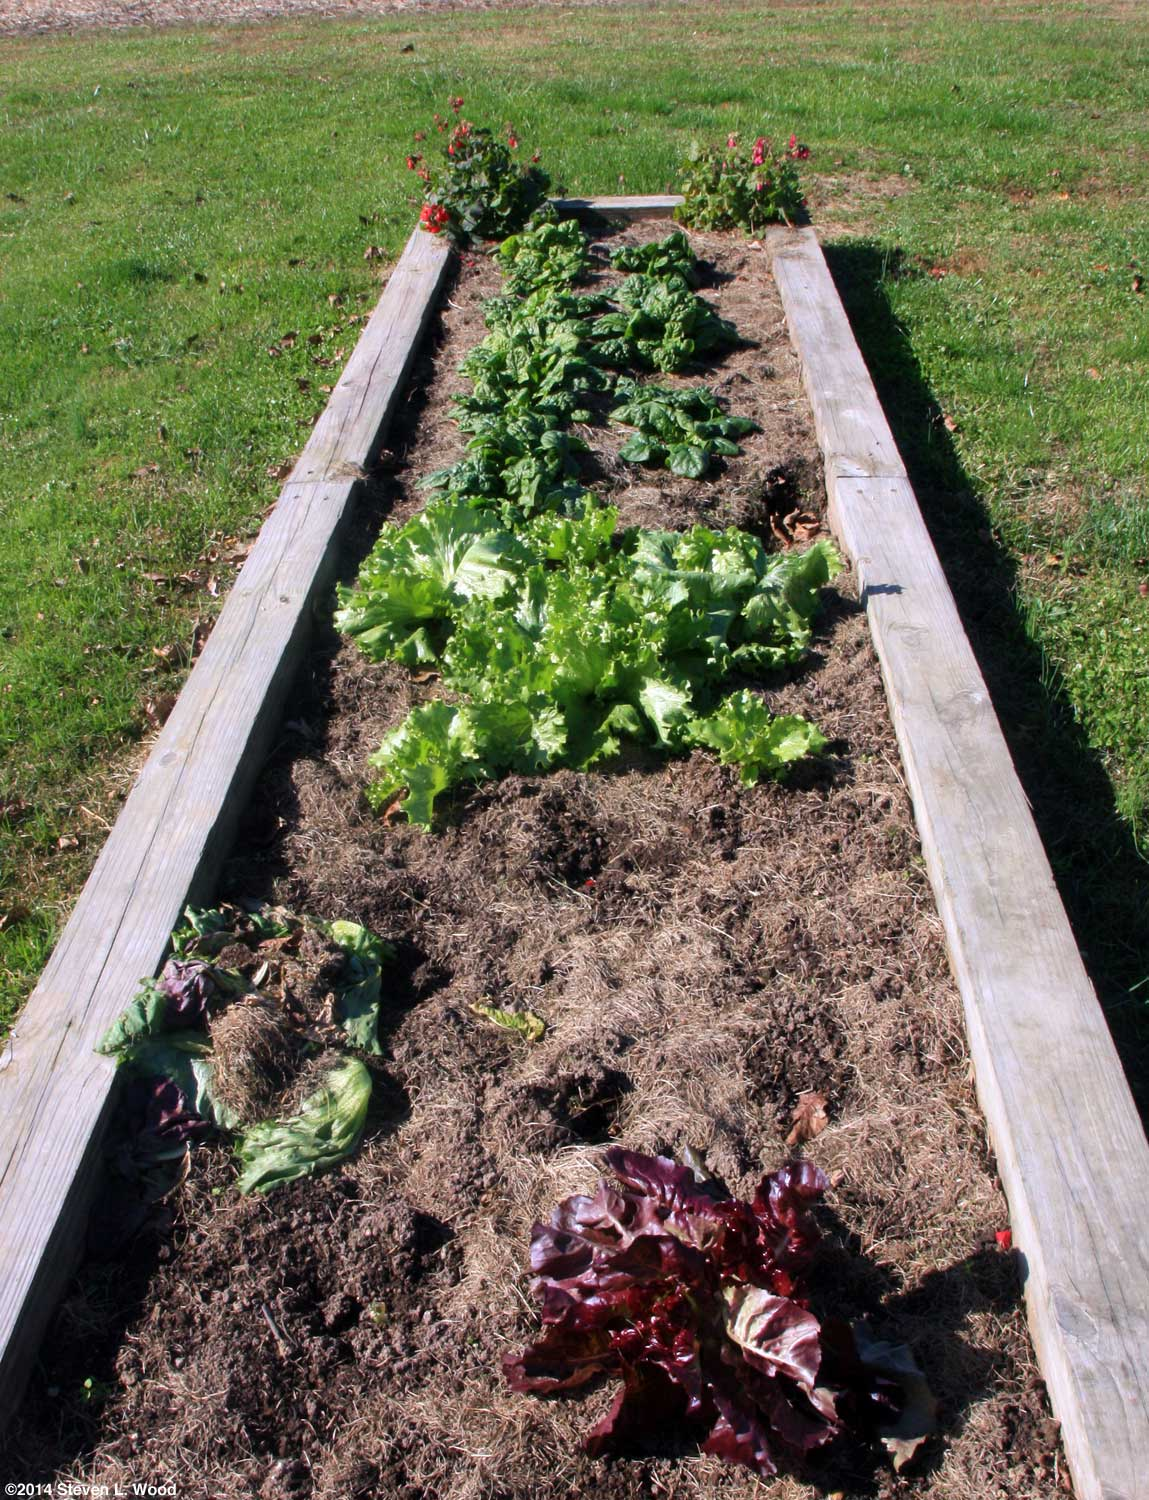 The old guys garden blog november 2014 interestingly our bed of lettuce and spinach appears fandeluxe Choice Image